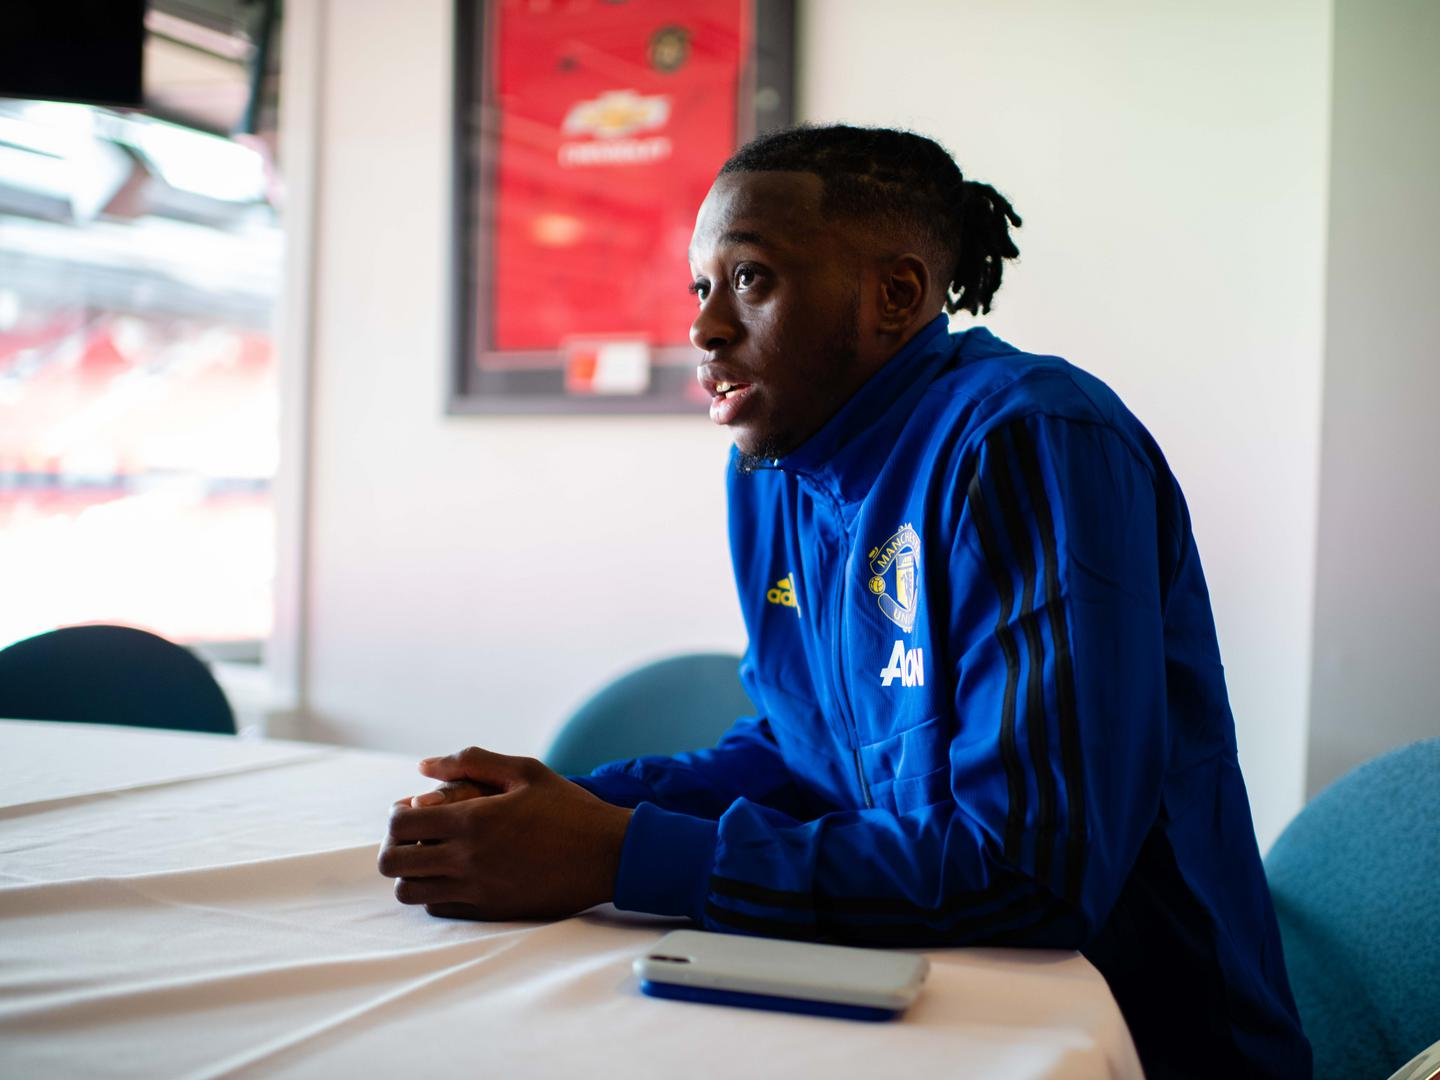 Aaron Wan-Bissaka talks to Man Utd's Steve Bartram at Old Trafford.